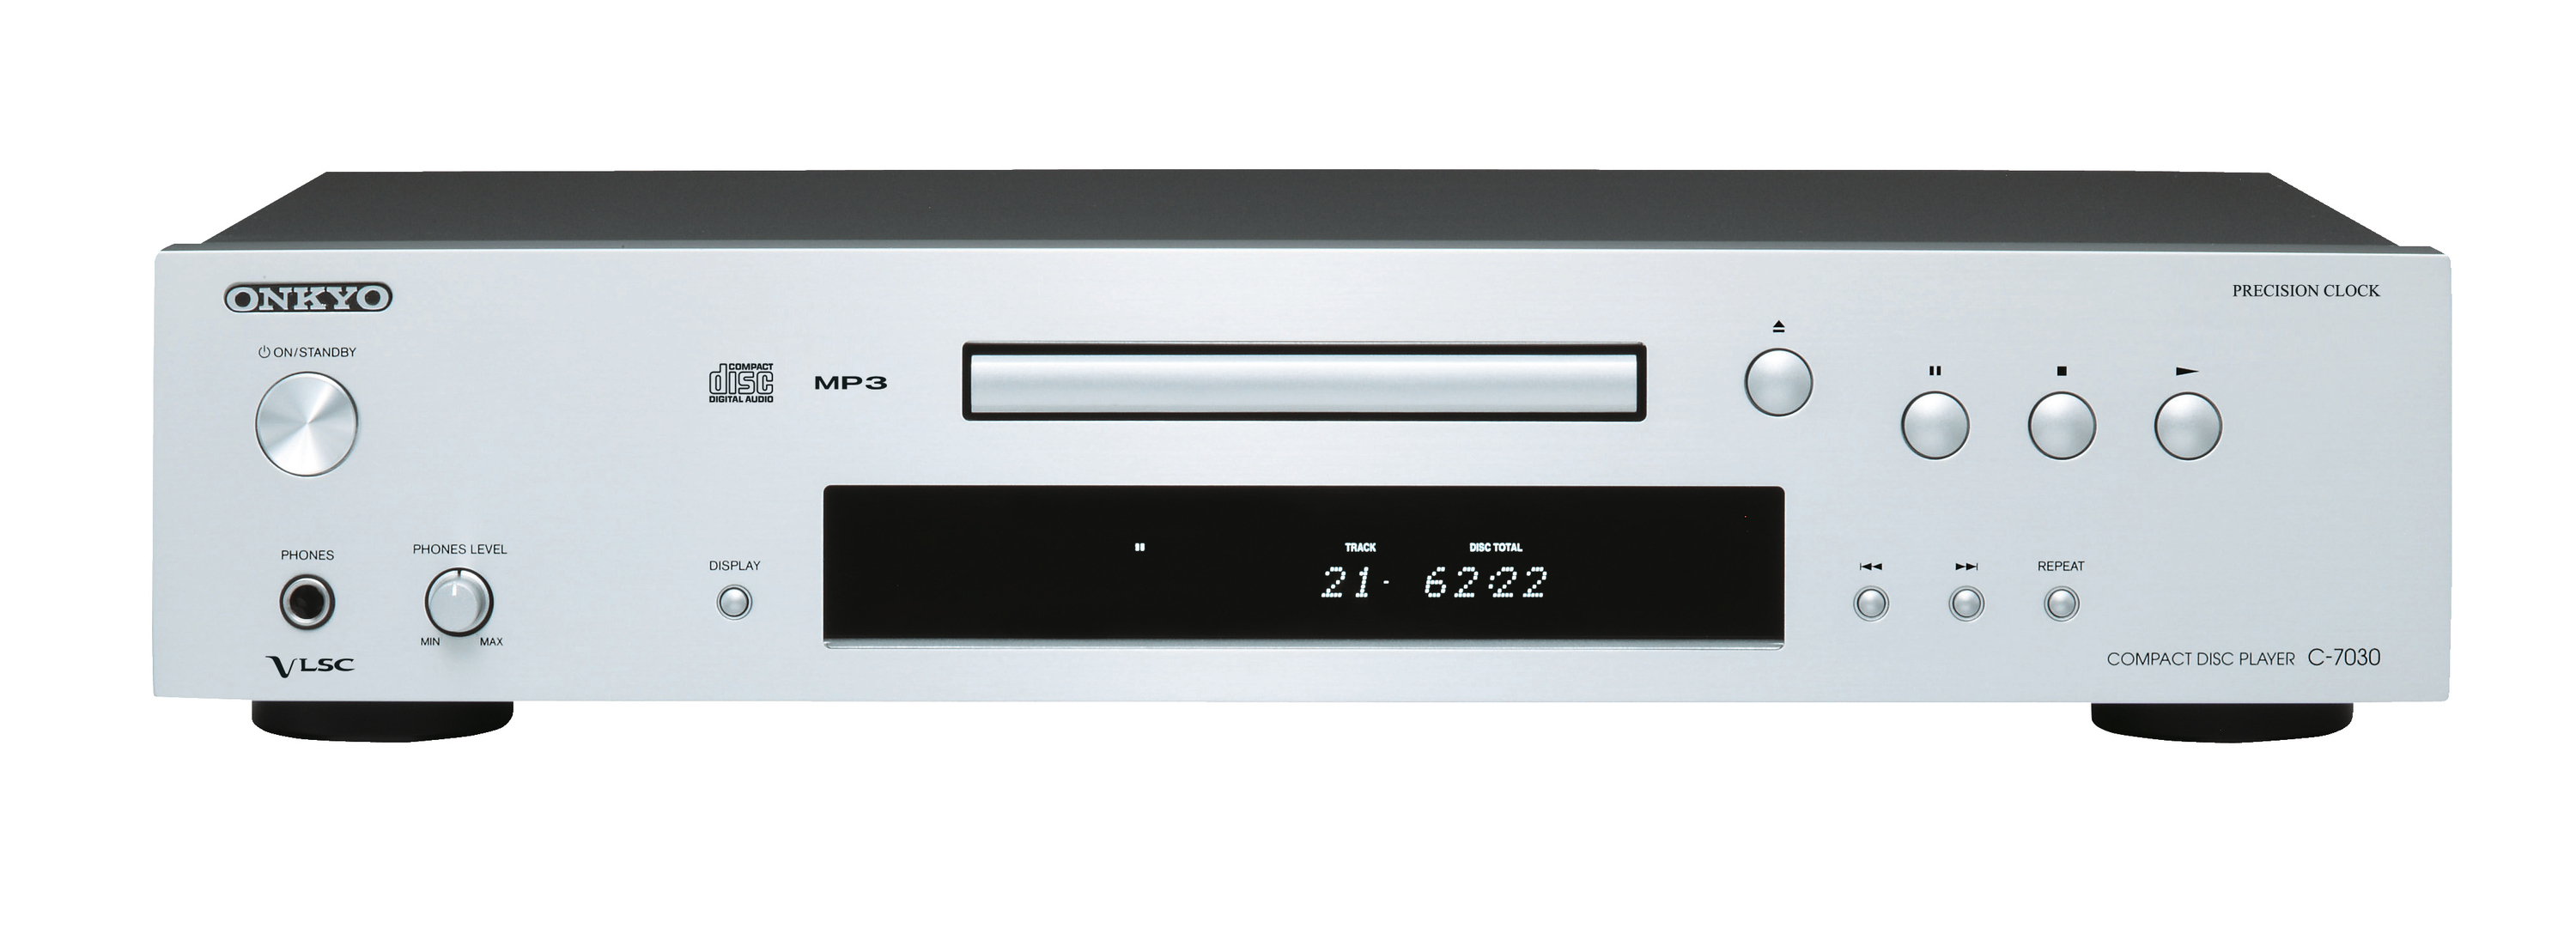 ONKYO C-7030 CD-Player für 190,99 Euro